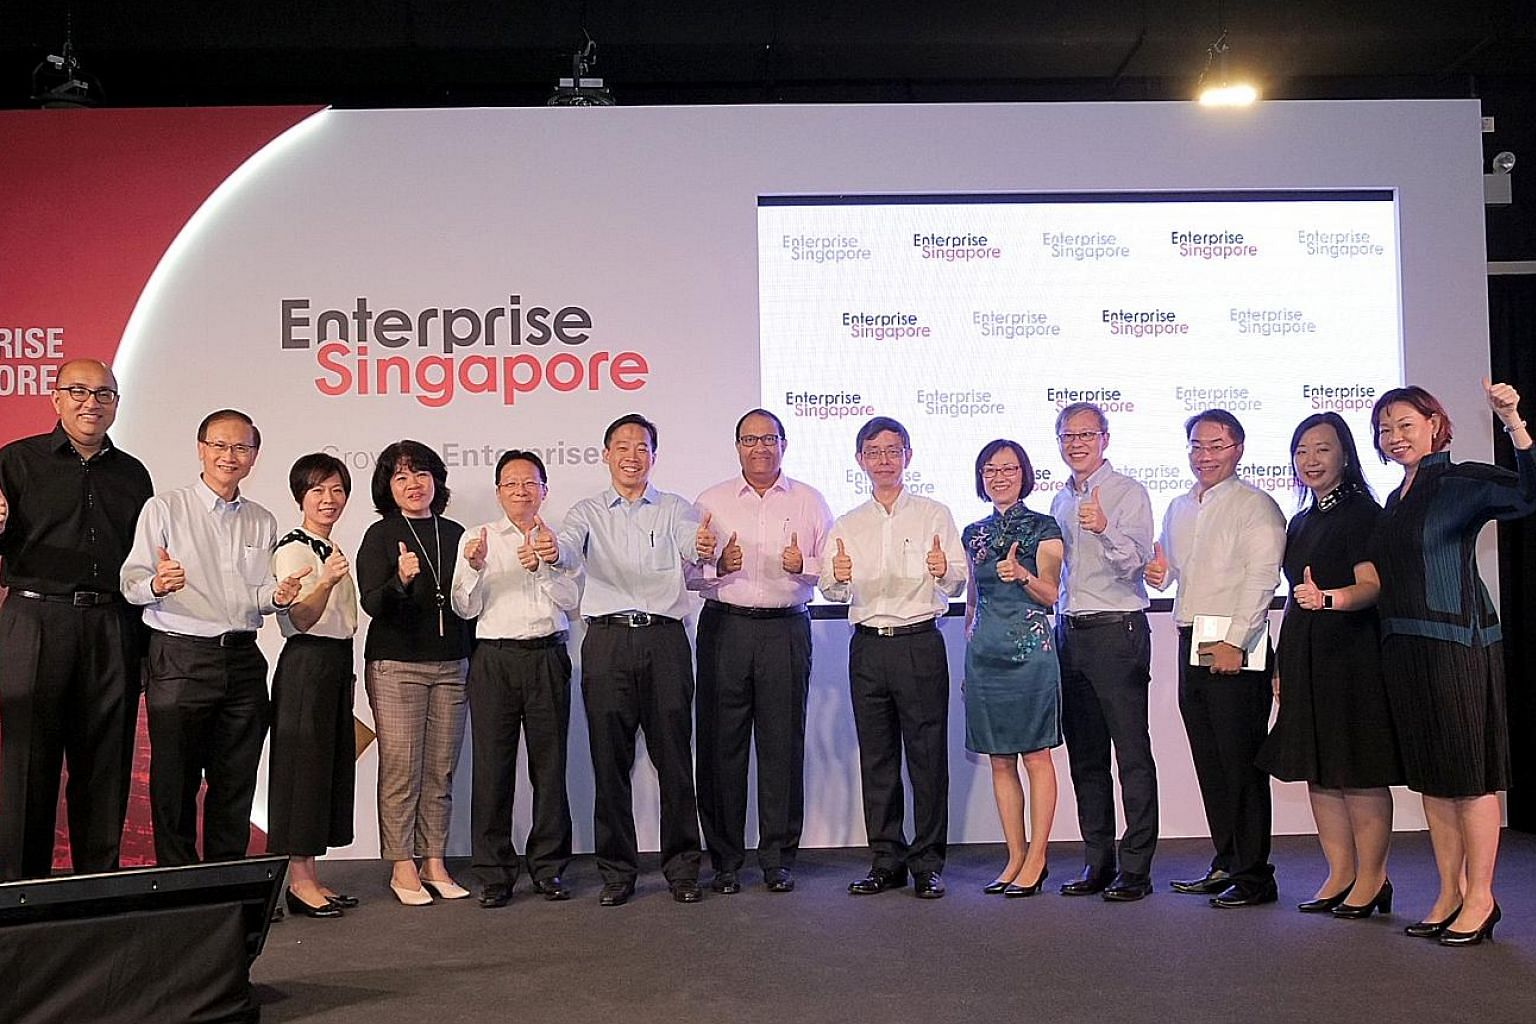 At yesterday's launch of Enterprise Singapore were (from left) assistant CEO Satvinder Singh, deputy CEO Ted Tan, assistant CEO Eunice Koh, assistant CEO Chew Mok Lee, senior adviser Chua Taik Him, CEO Png Cheong Boon, Minister for Trade and Industry